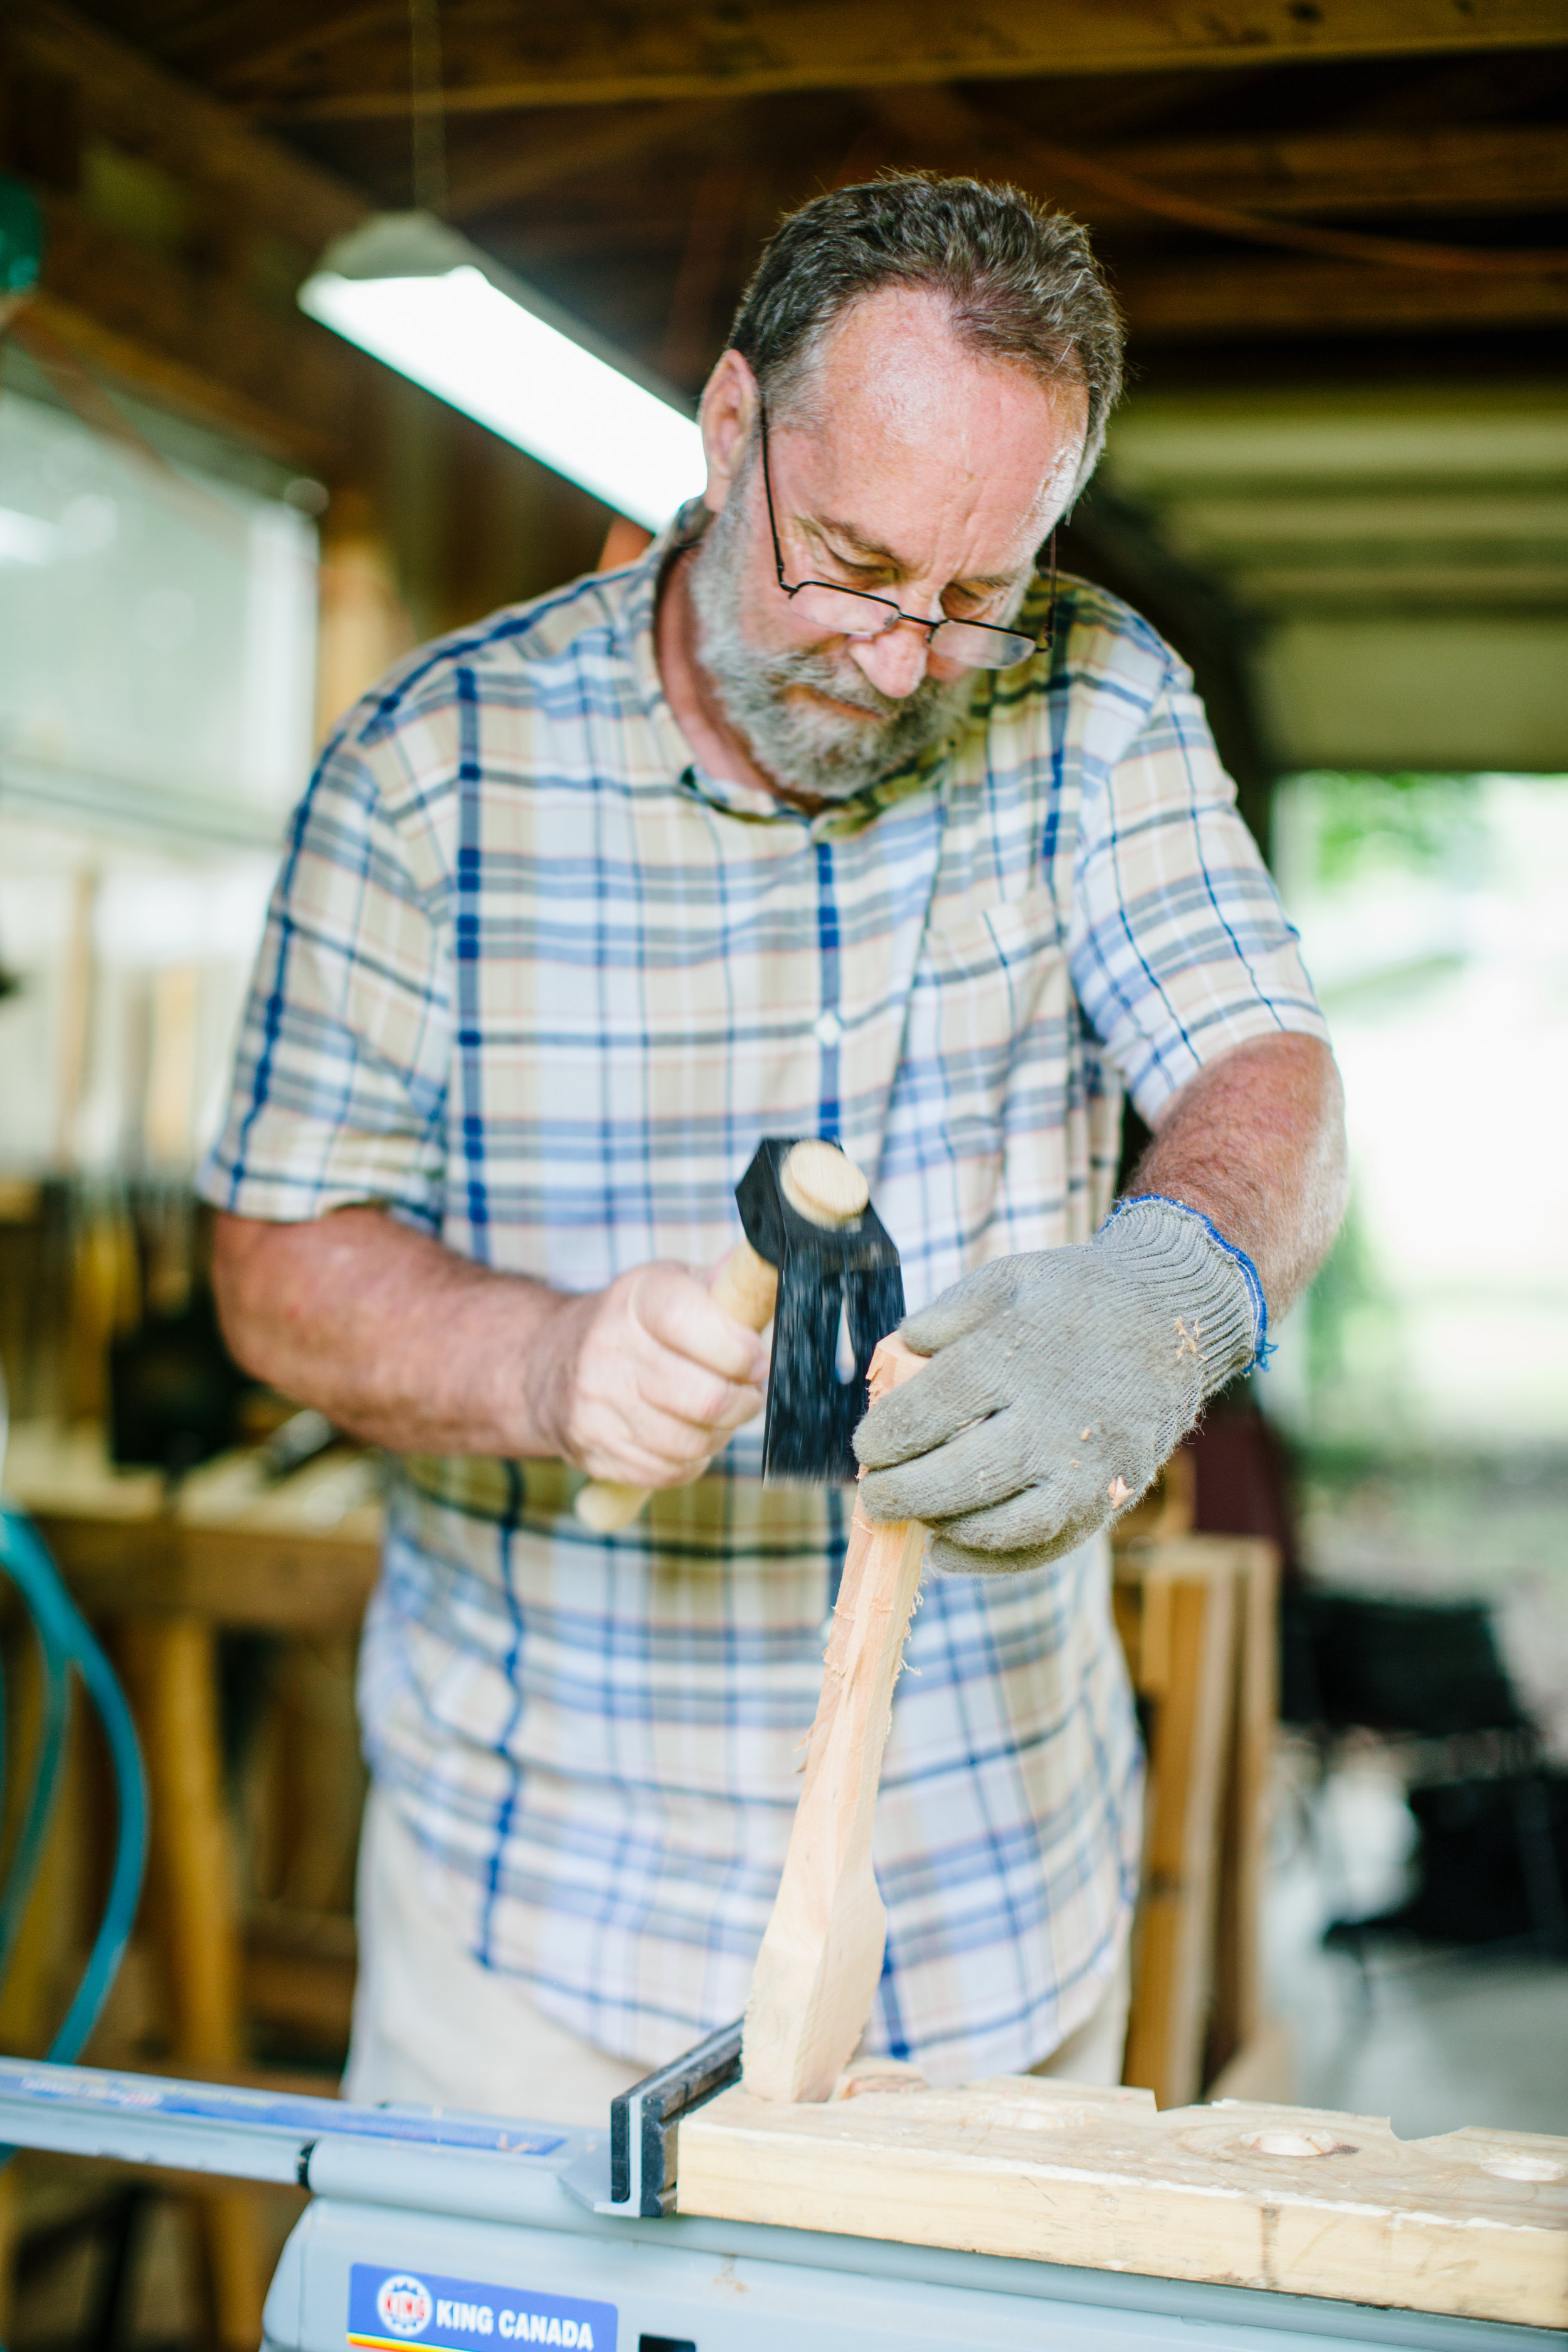 John Kirkpatrick uses an adze to begin roughing out the shape of the spoon.